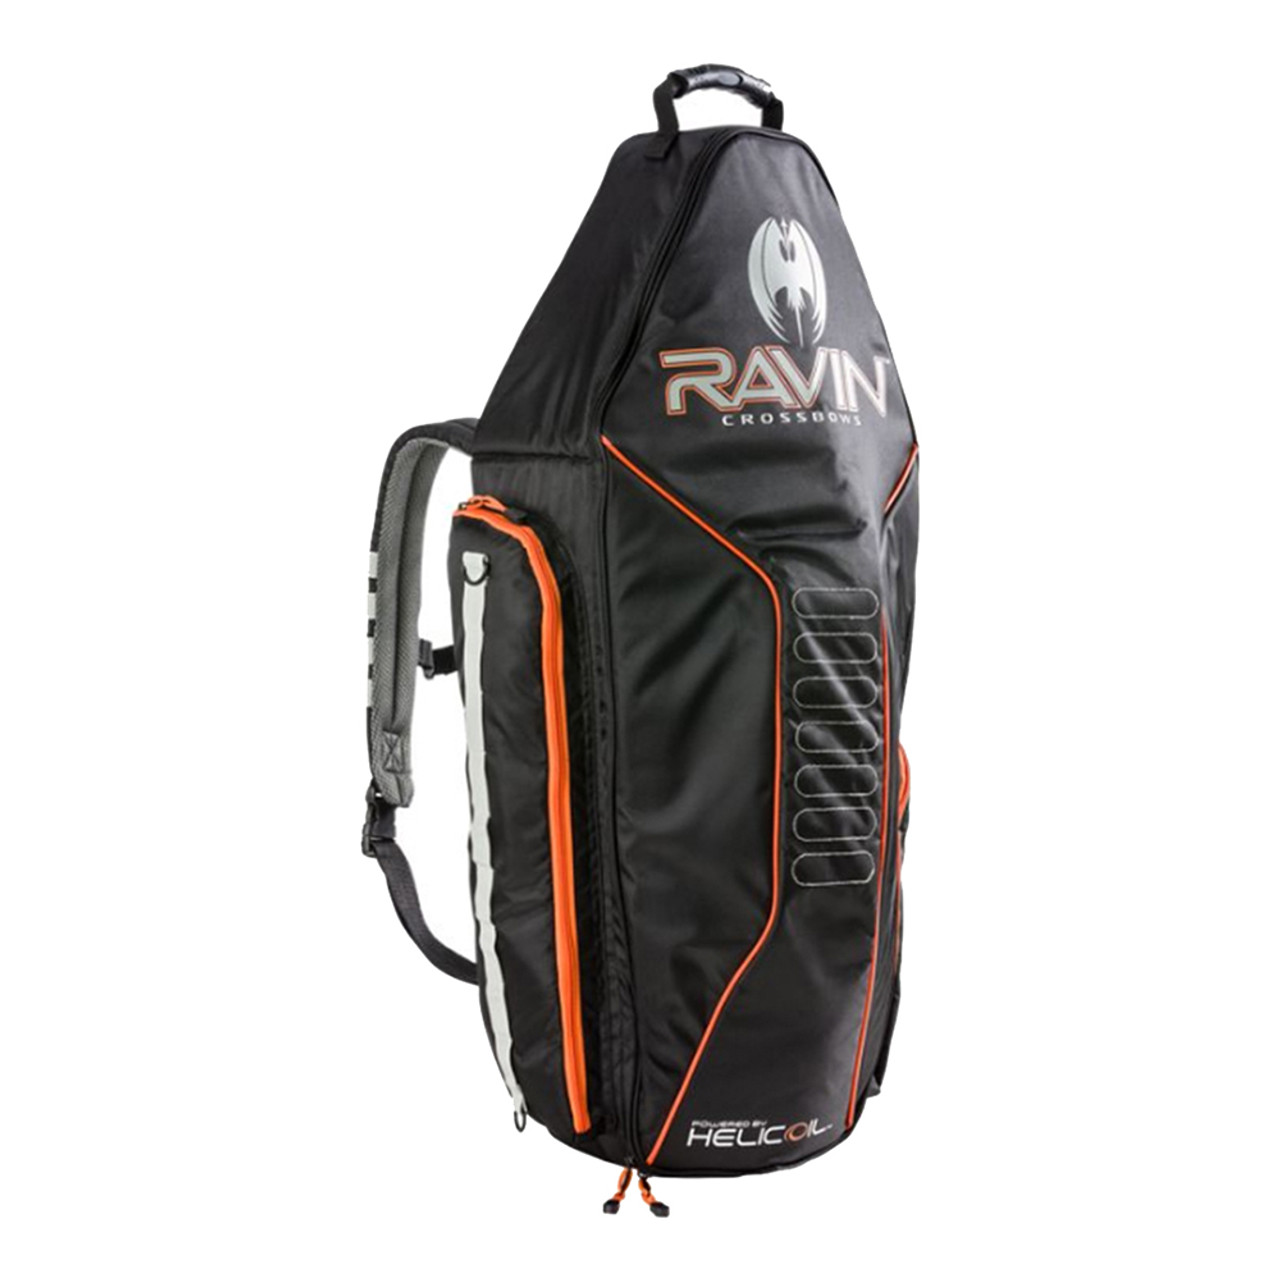 Ravin Crossbow Soft Case, UPC :815942021804